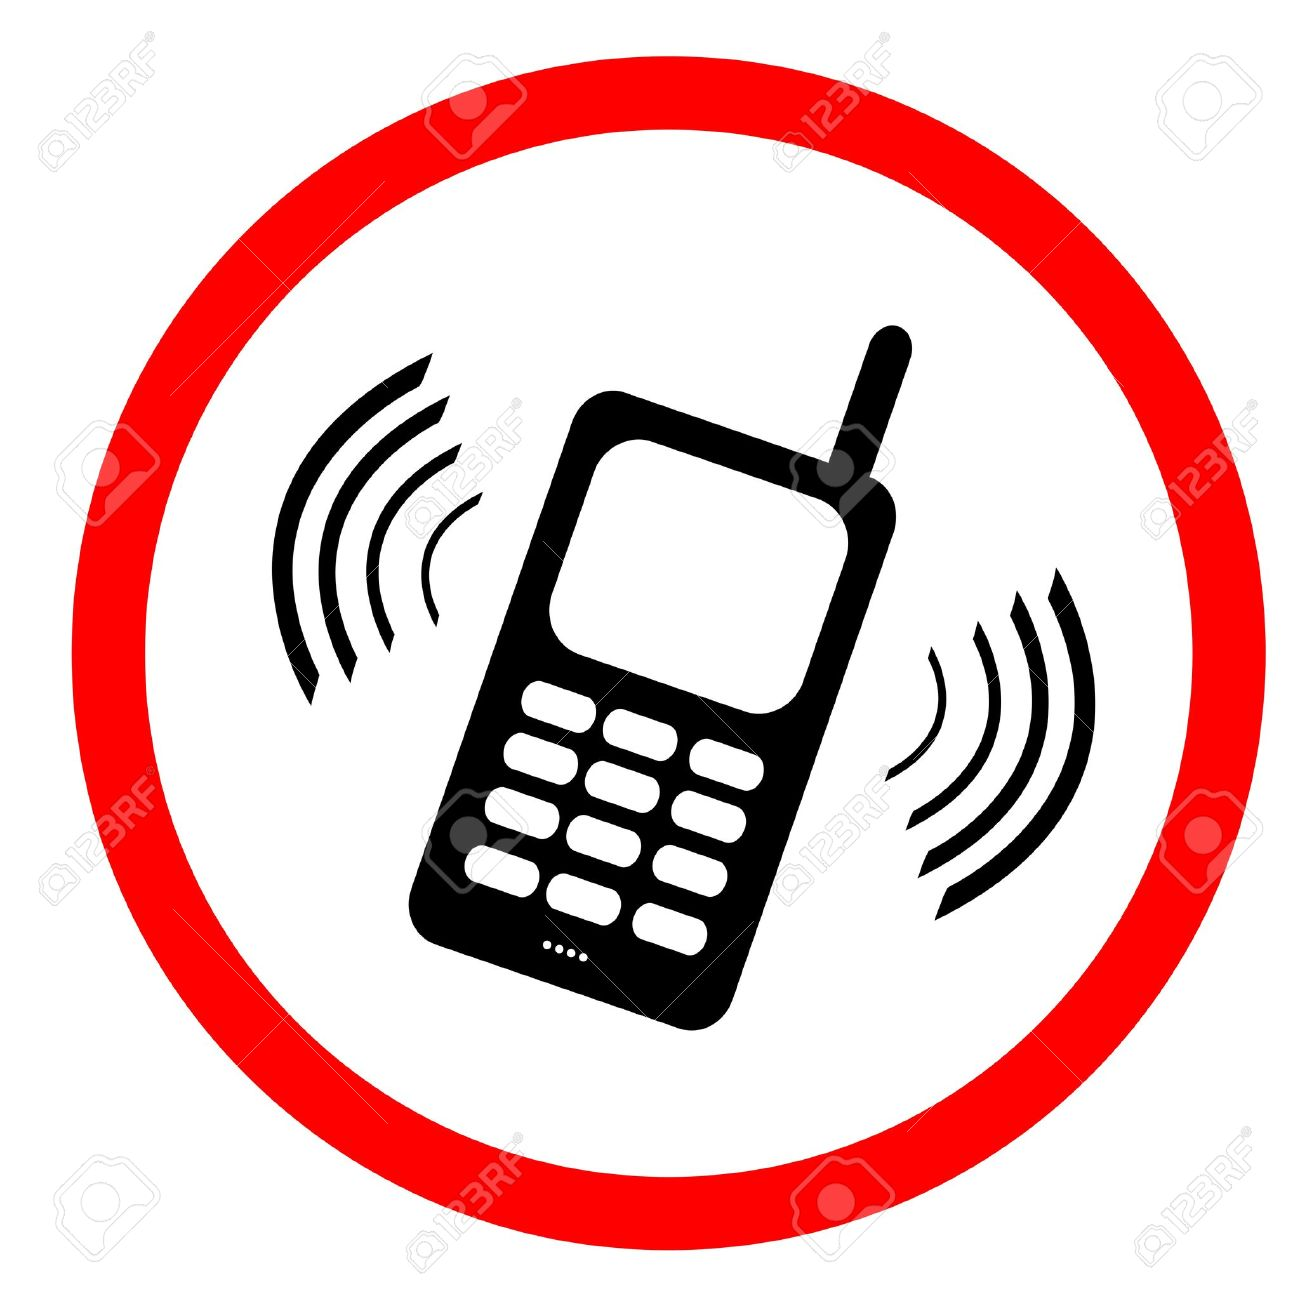 No Mobile Phone Sign : Please Use Vibrate Or Silent Mode Stock.